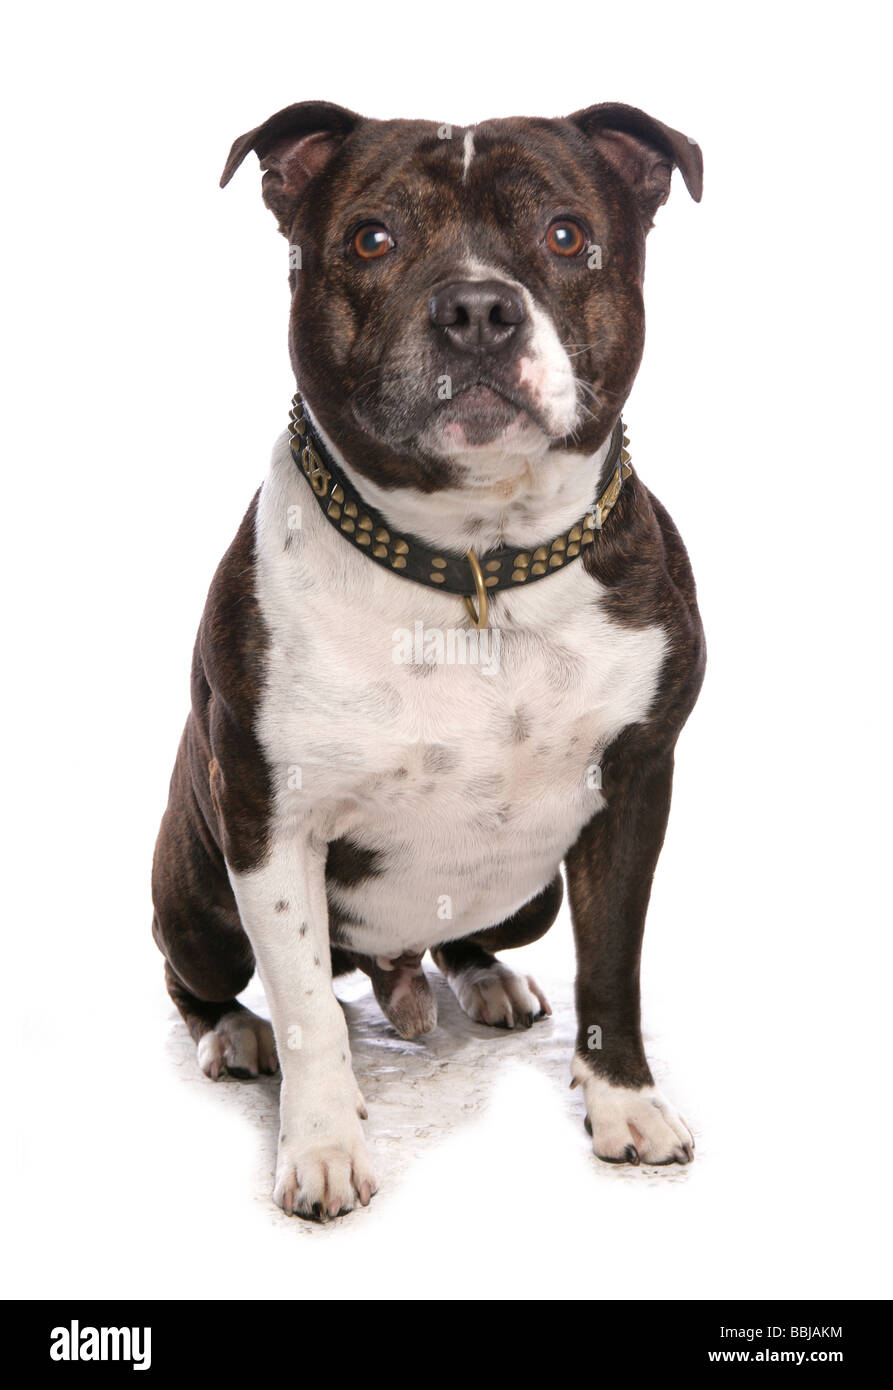 Staffordshire Bull Terrier. Adult dog sitting. Studio picture against a white background - Stock Image